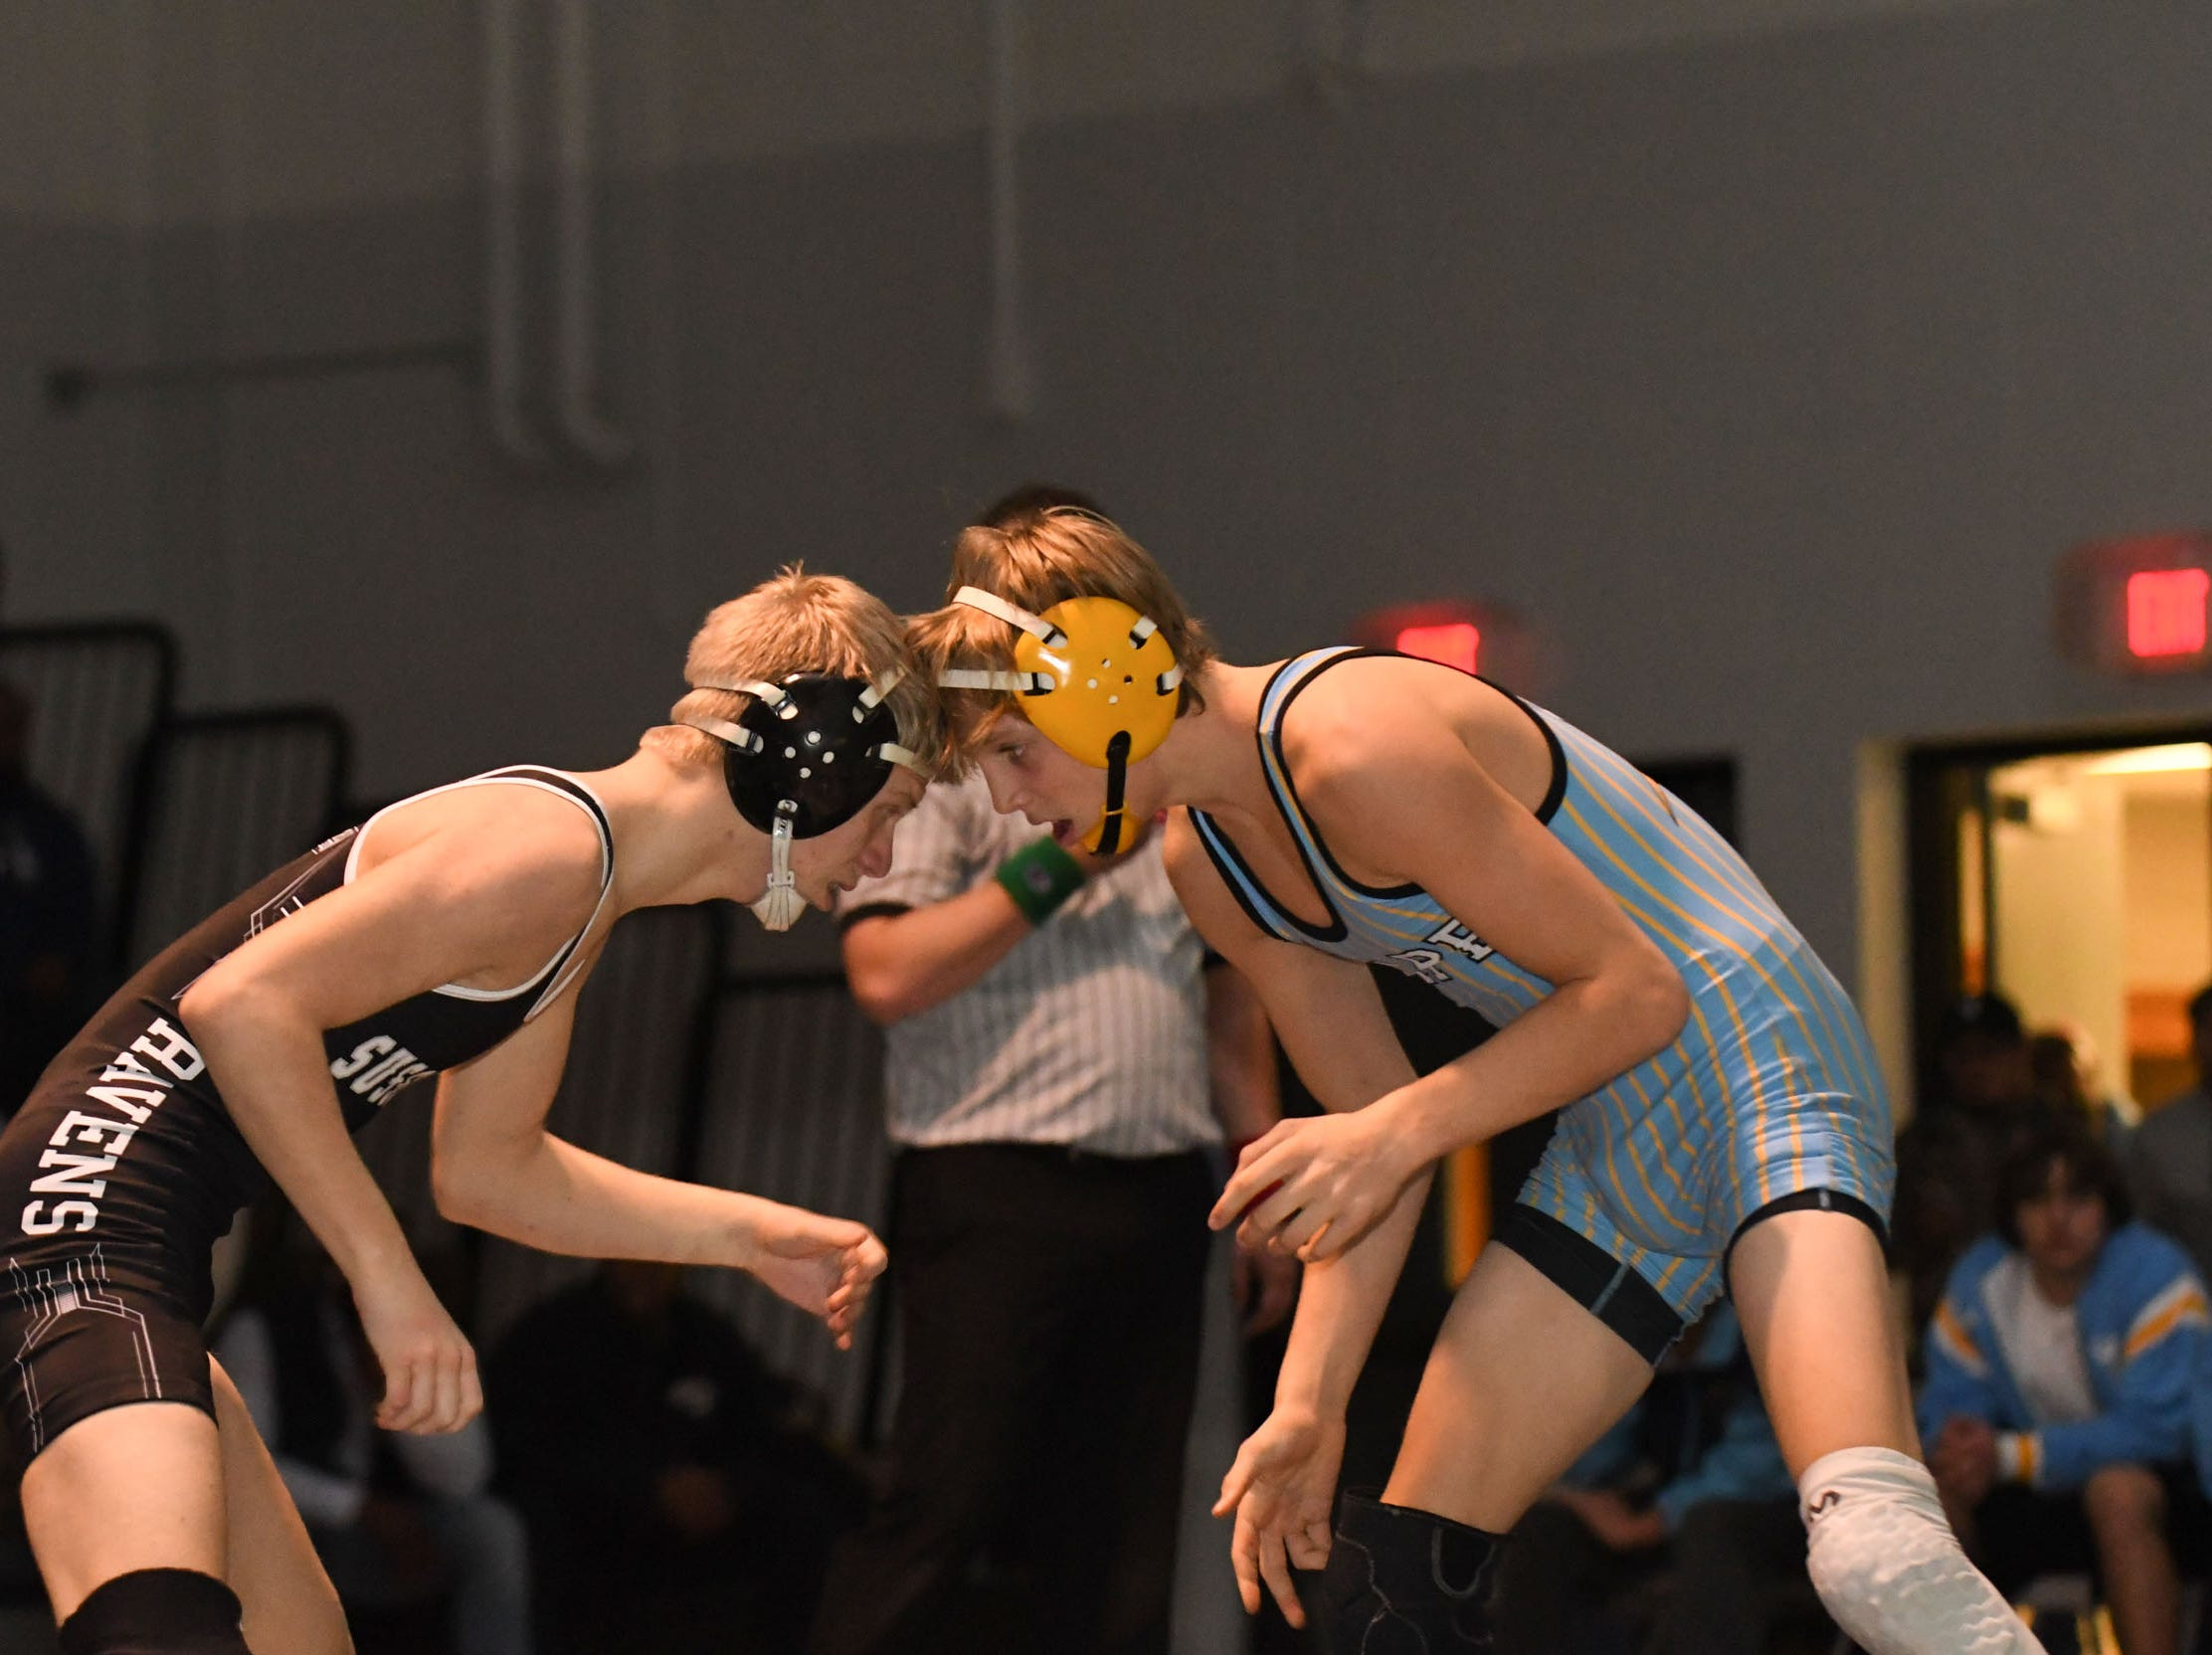 Sussex Tech's Mason Rolph faced off against Cape Henlopen's Carson Kammerer during the 120lb match on Wedenesday, Jan. 23, 2019 at Sussex Tech High School in Georgetown, Del.